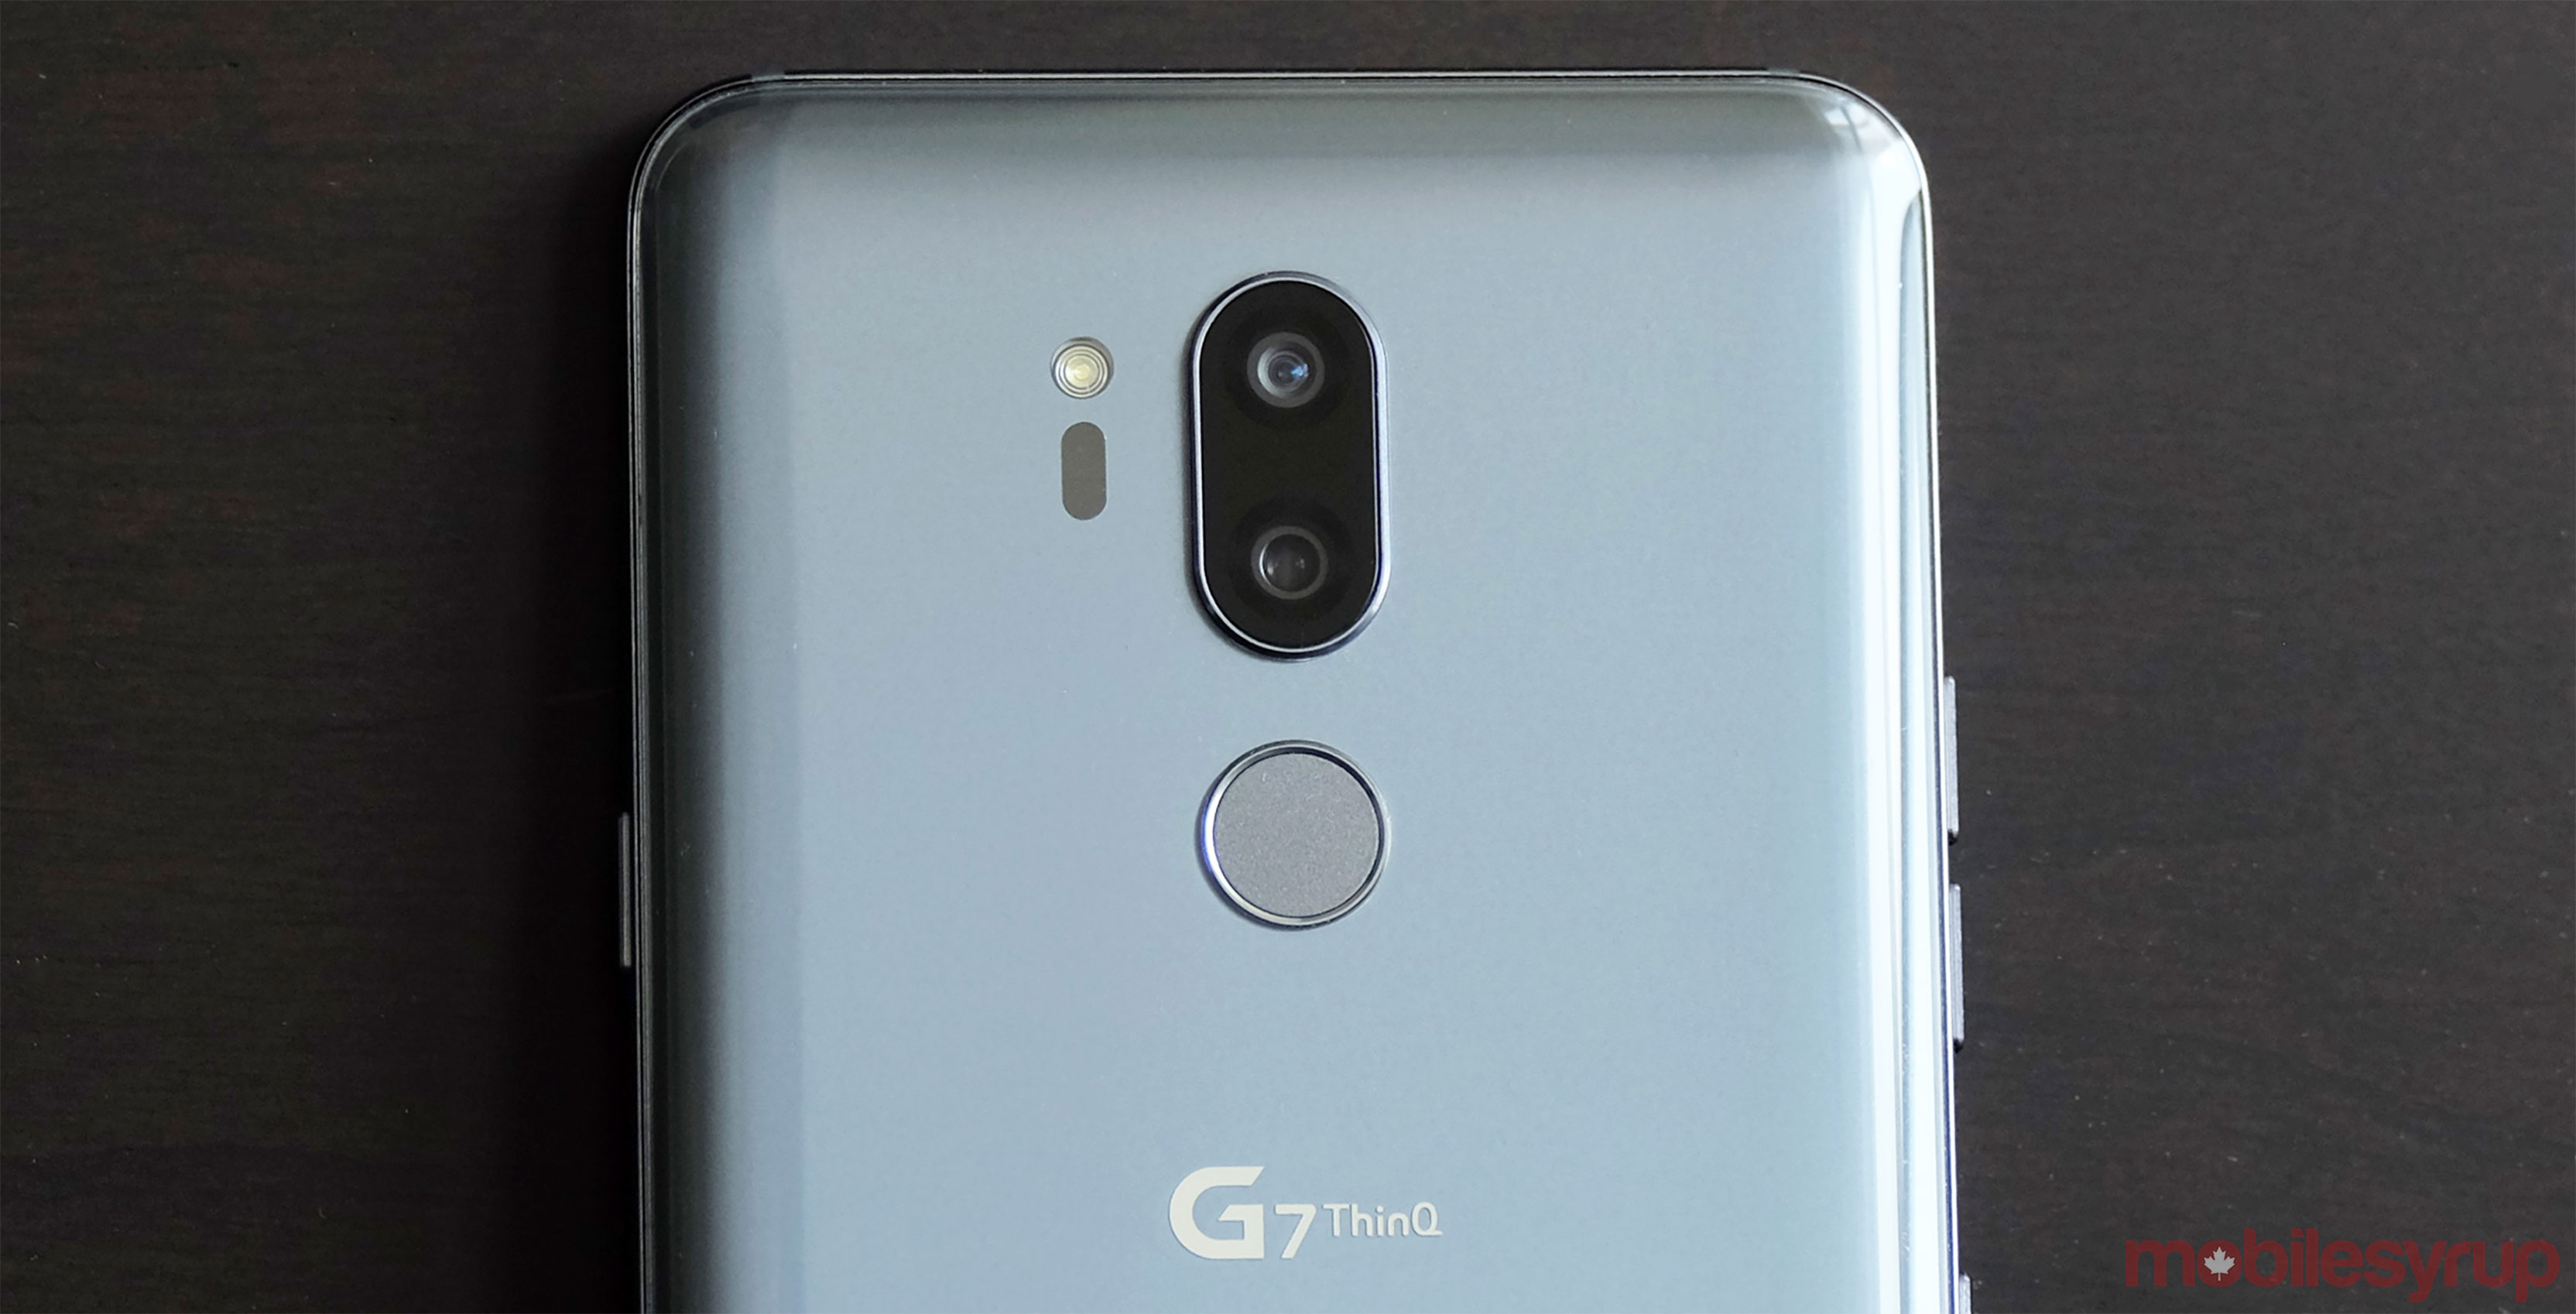 Android 9 Pie 'coming soon' to LG G7 ThinQ phones in Canada